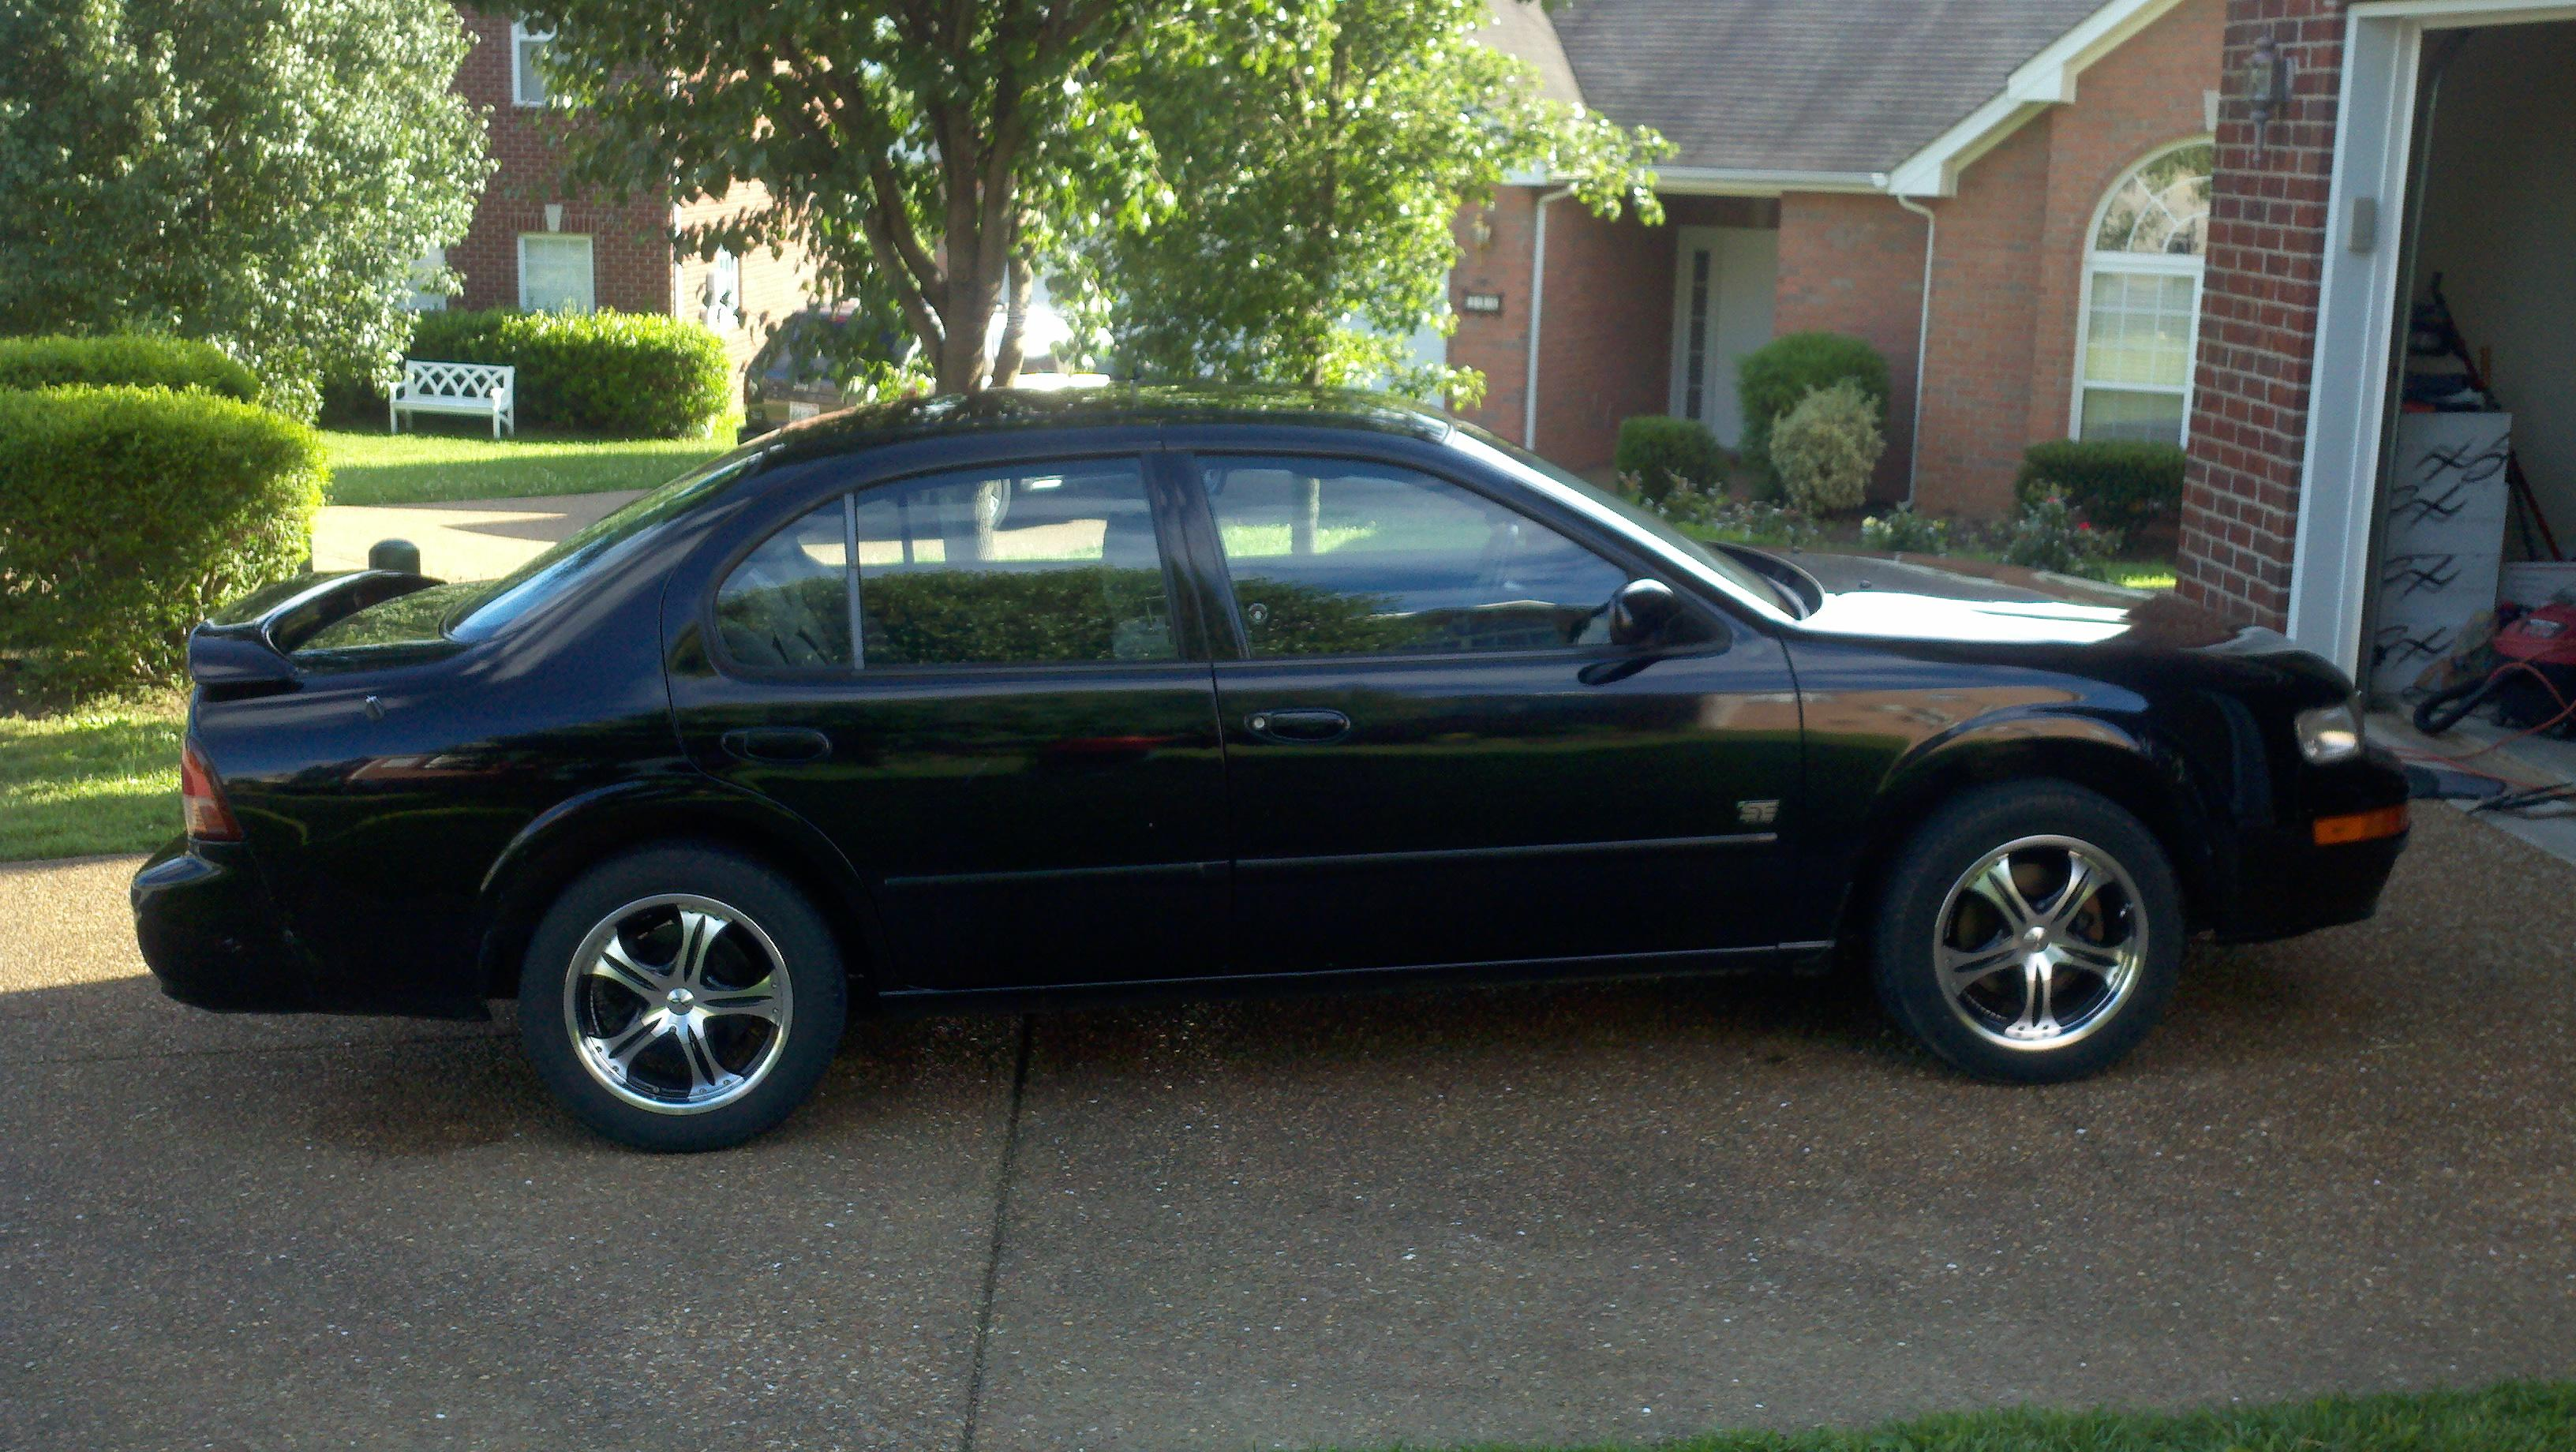 beegeezee505 39 s 1999 nissan maxima se sedan 4d in brentwood tn. Black Bedroom Furniture Sets. Home Design Ideas